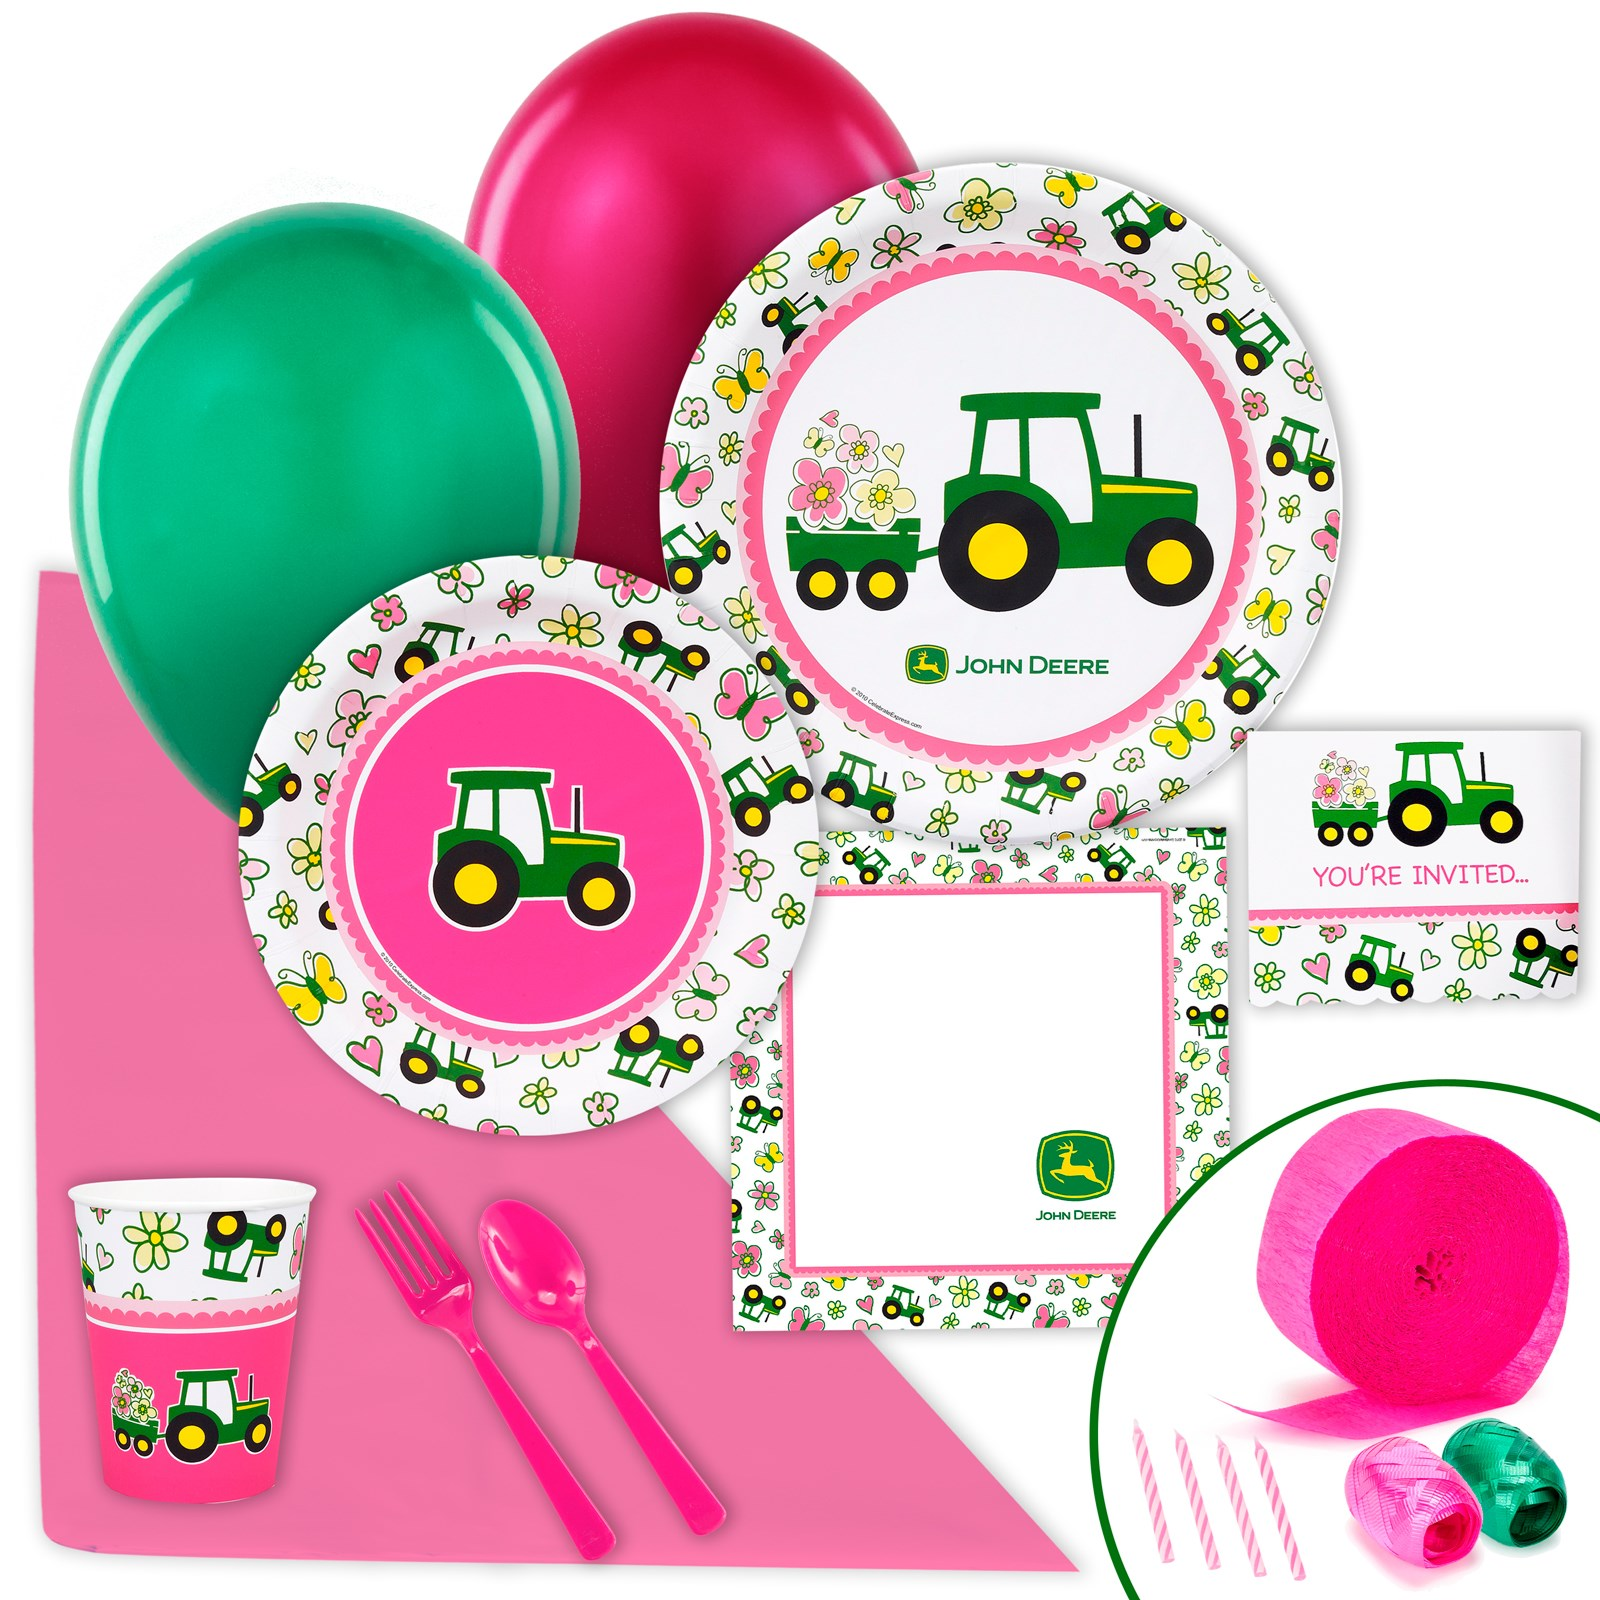 John Deere Pink Just Because Party Pack for 8 kids birthday partyware